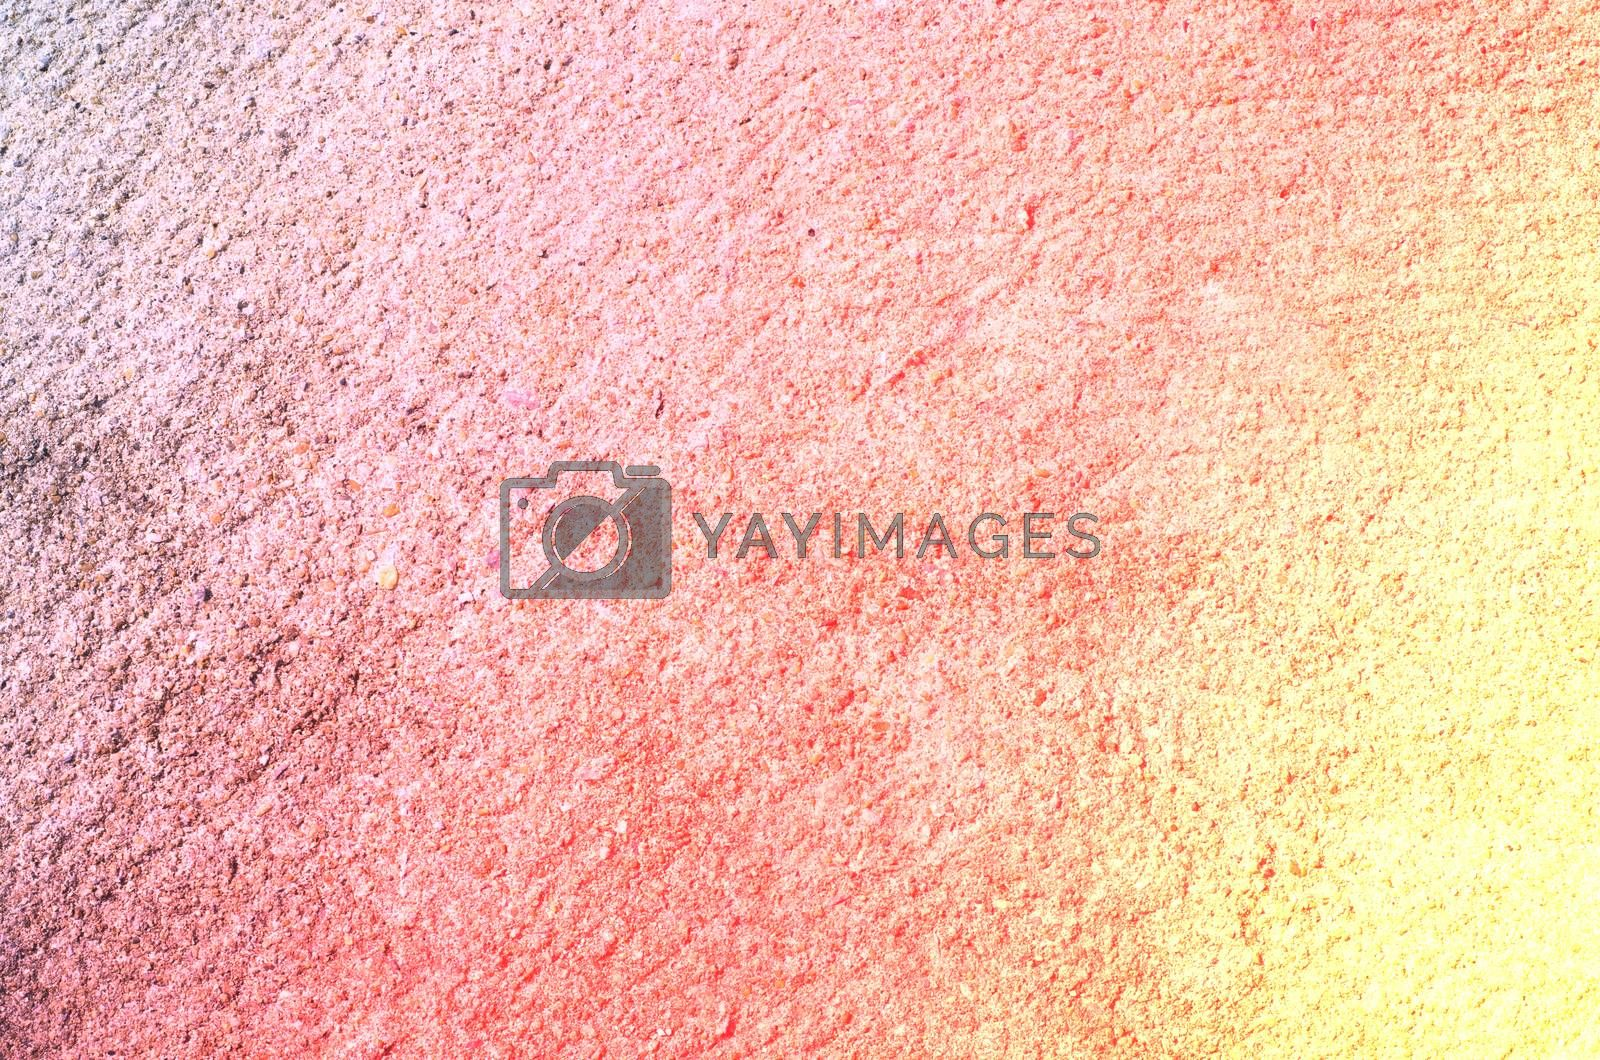 red yellow color Cement concrete surface abstract background and texture